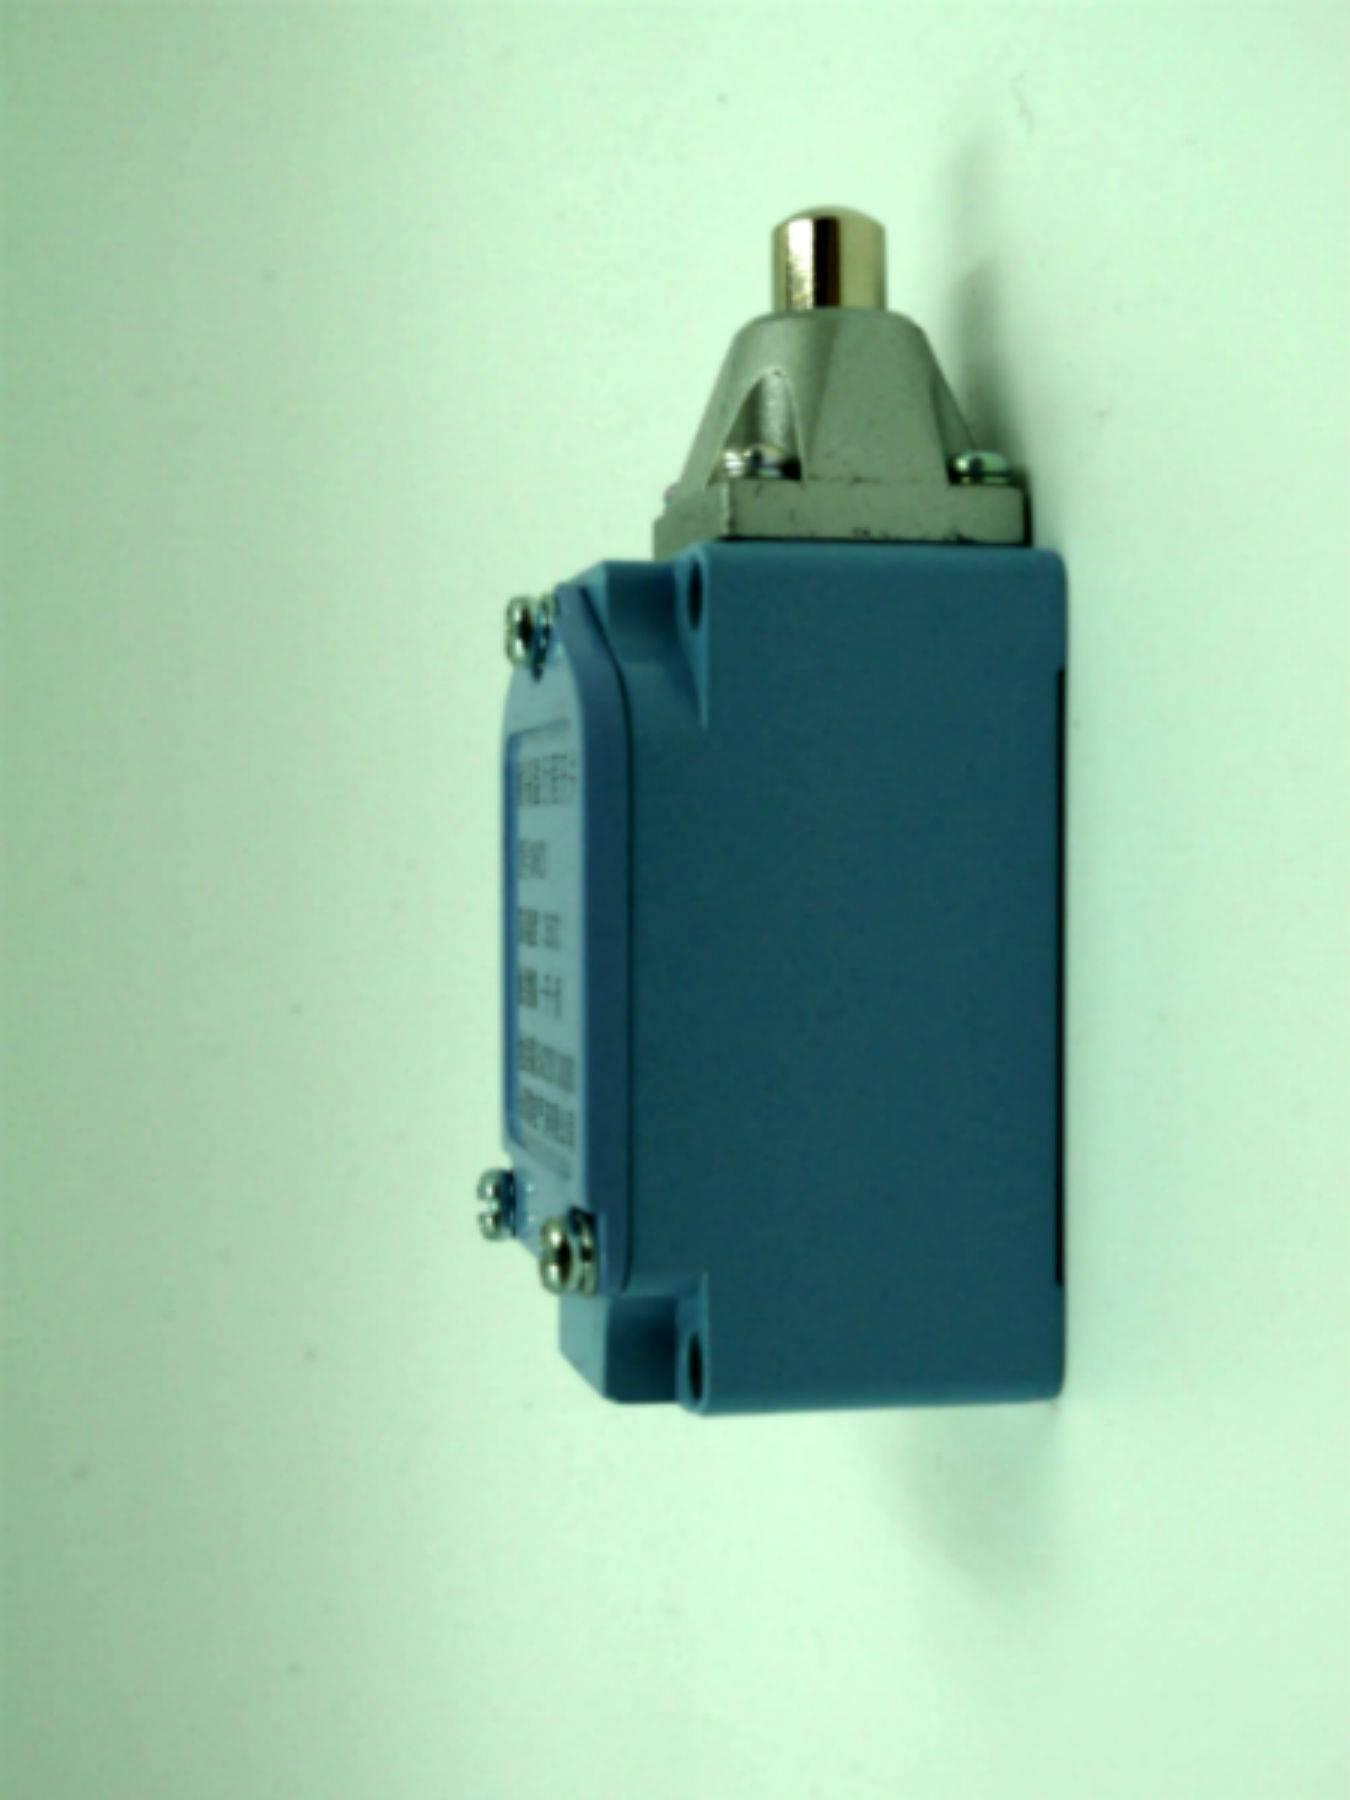 High temperature travel switch made in China